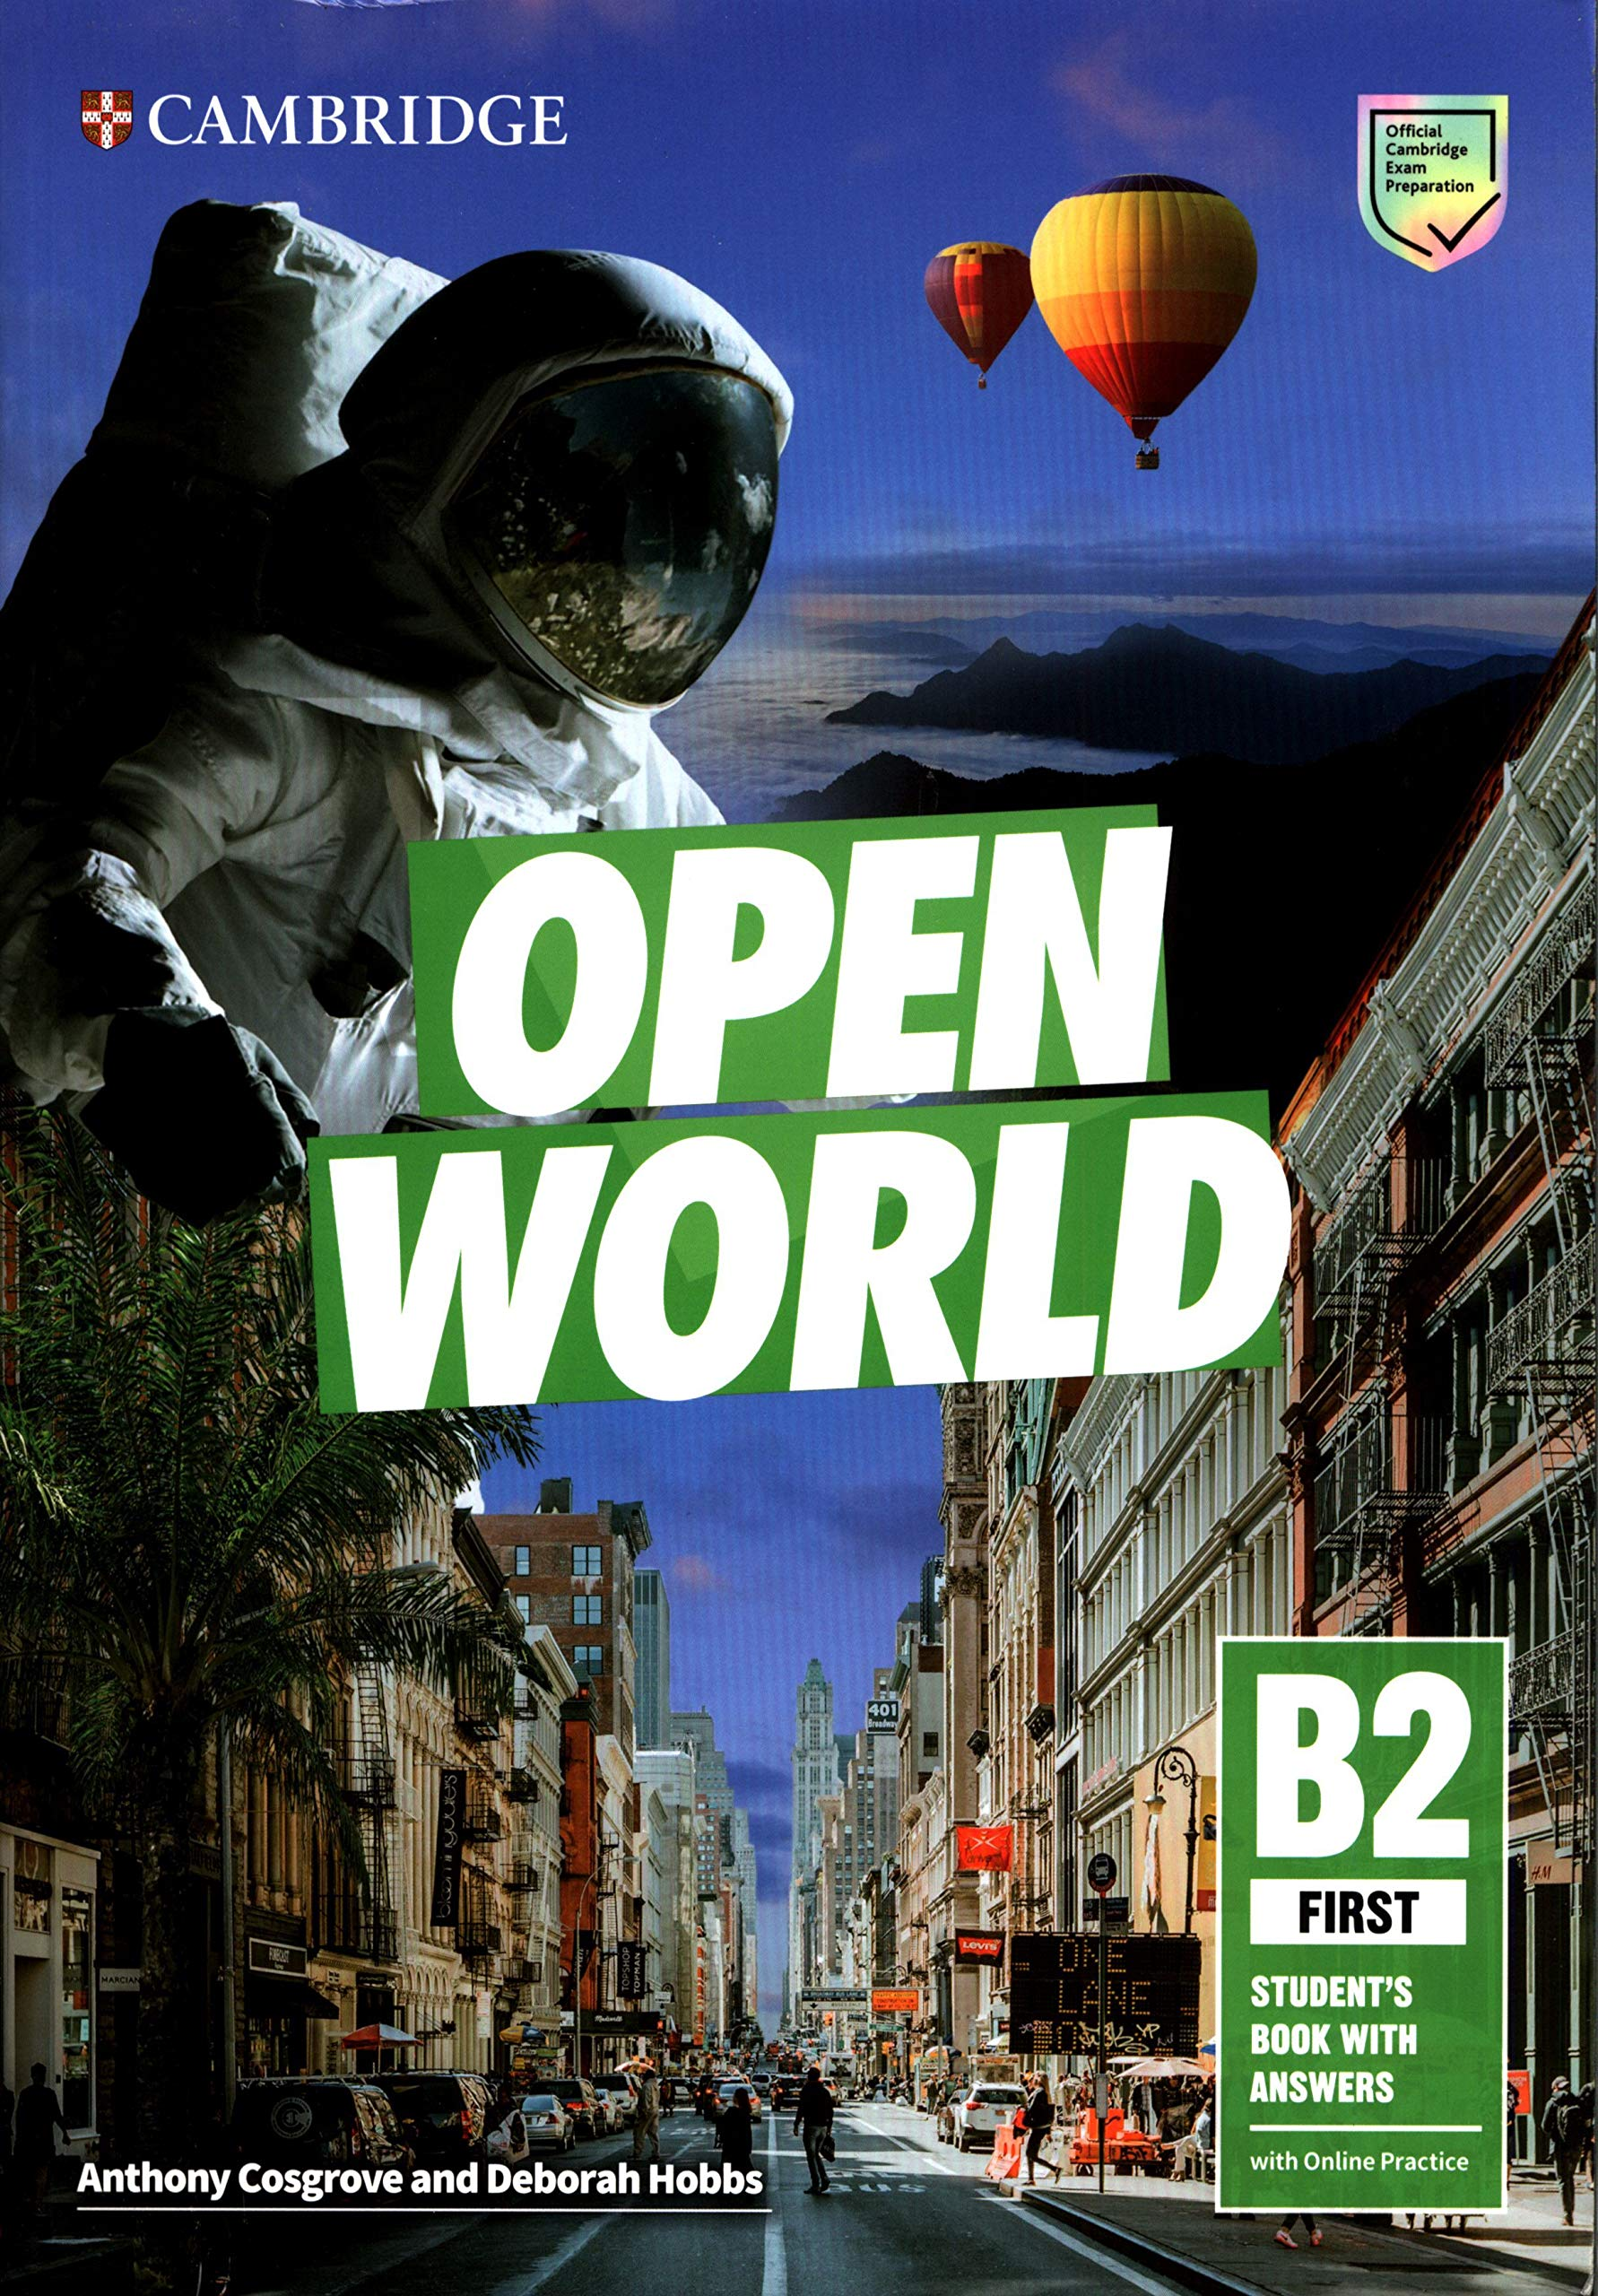 Open World First. Students Book with Answers with Online Practice: Amazon.es: Cosgrove, Anthony, Hobbs, Deborah: Libros